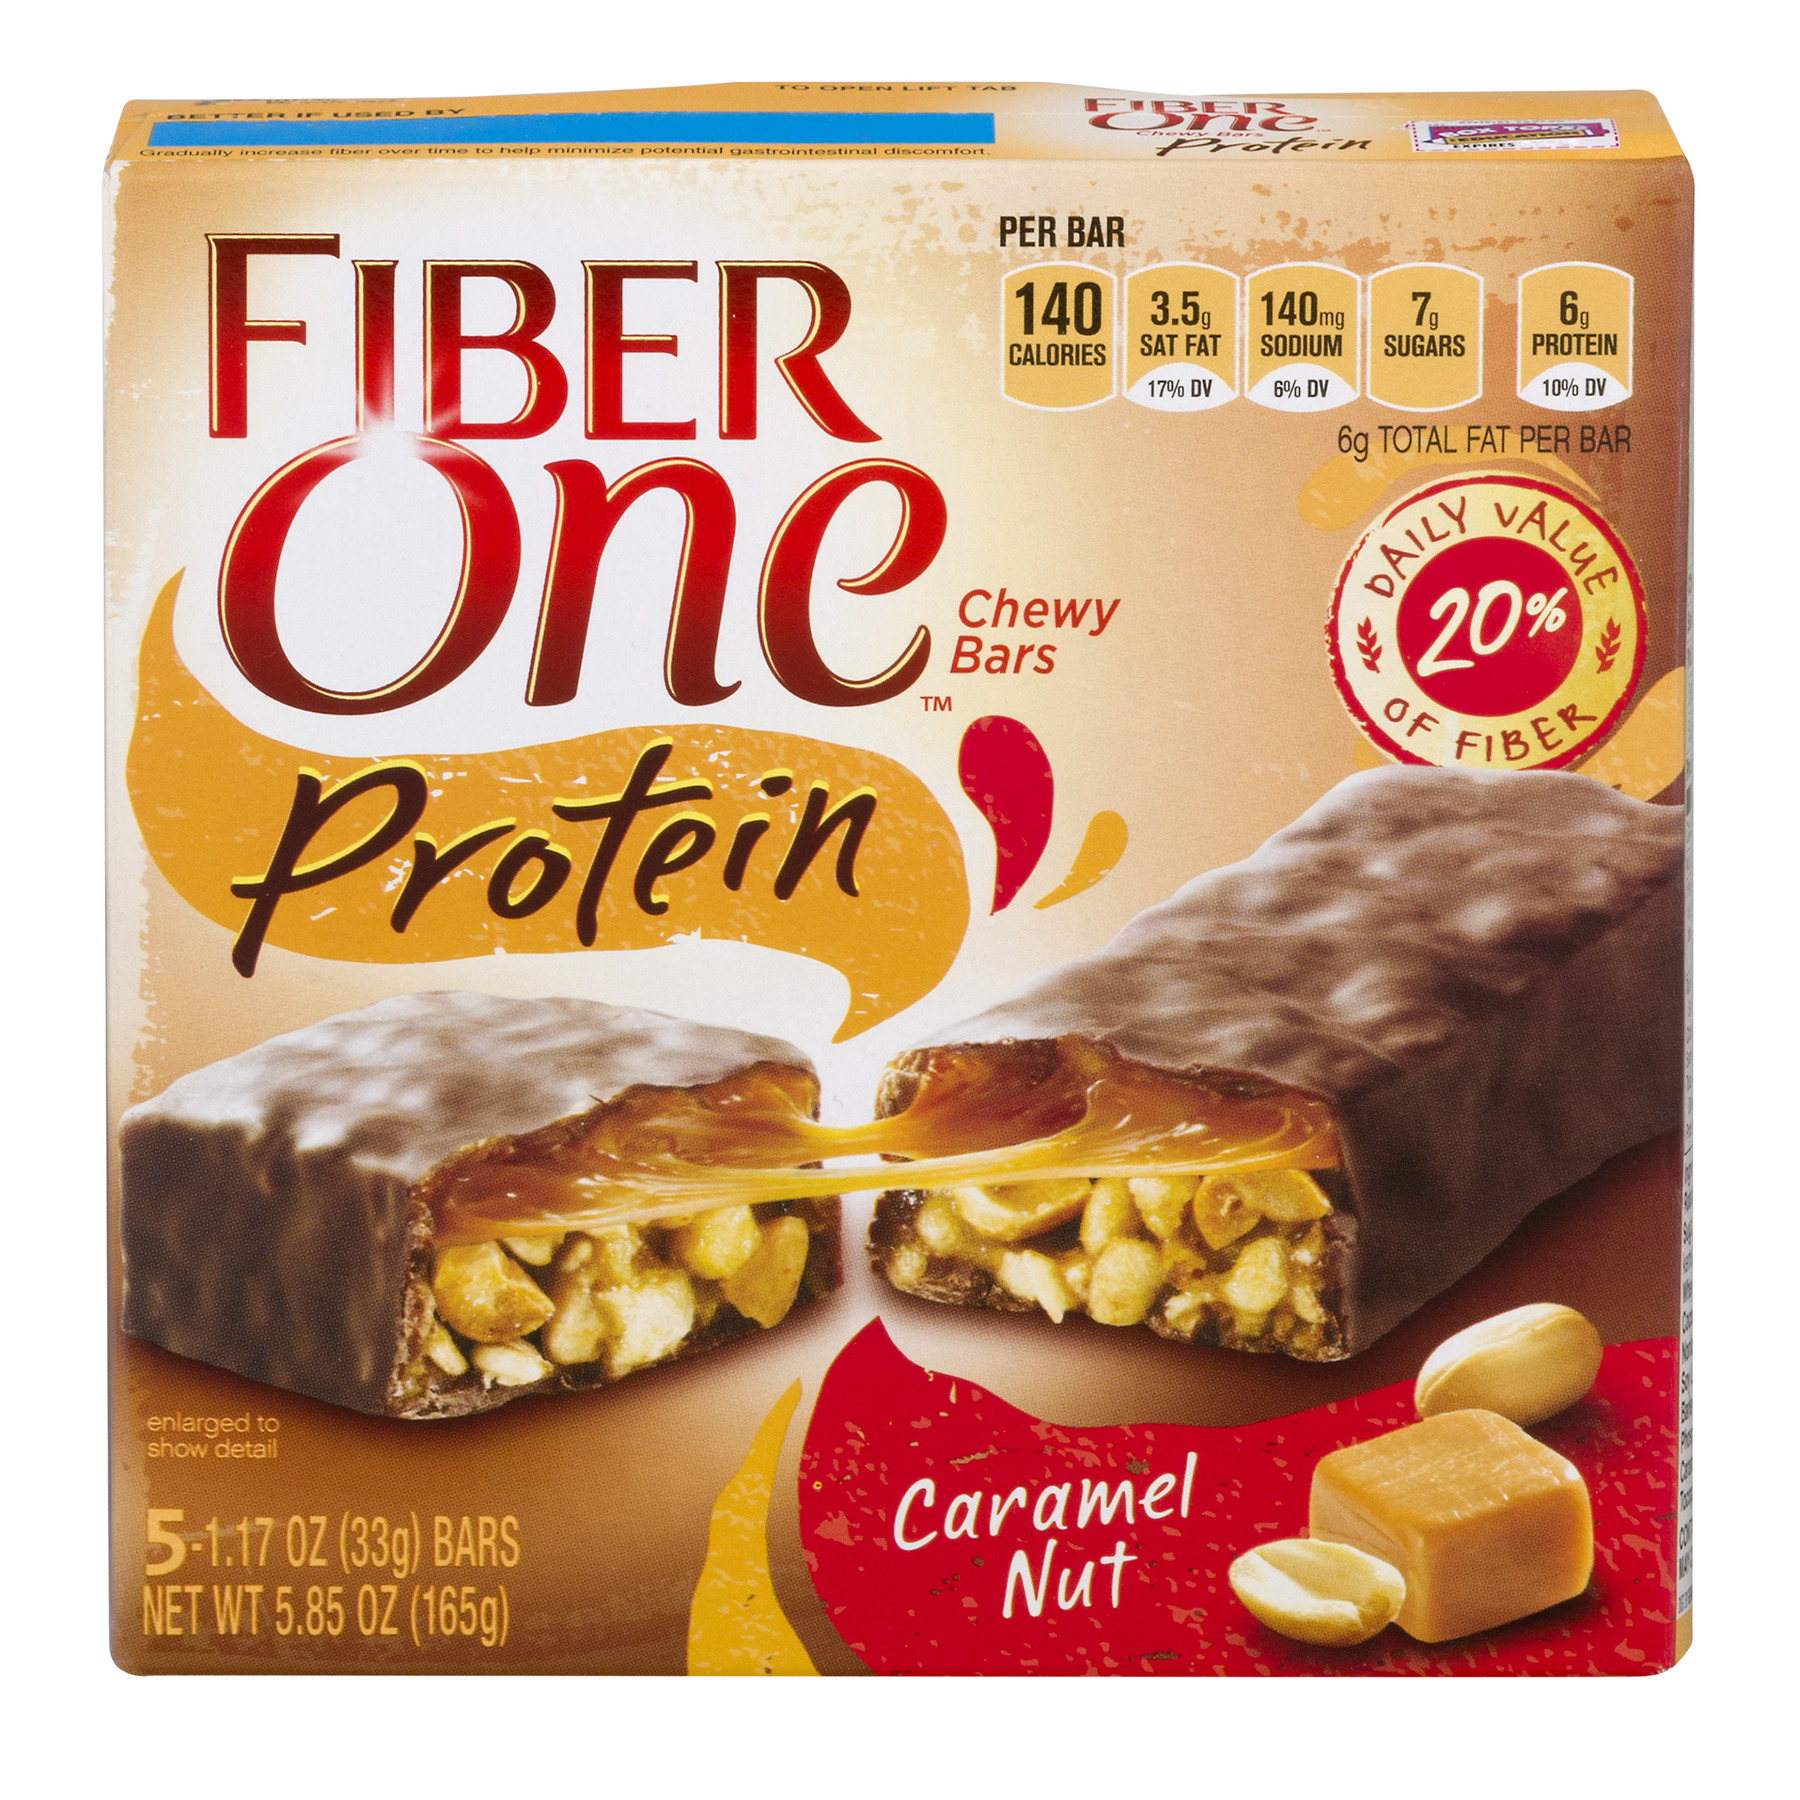 Fiber One Protein Chewy Bar, Caramel Nut, 6g Protein, 5 Ct